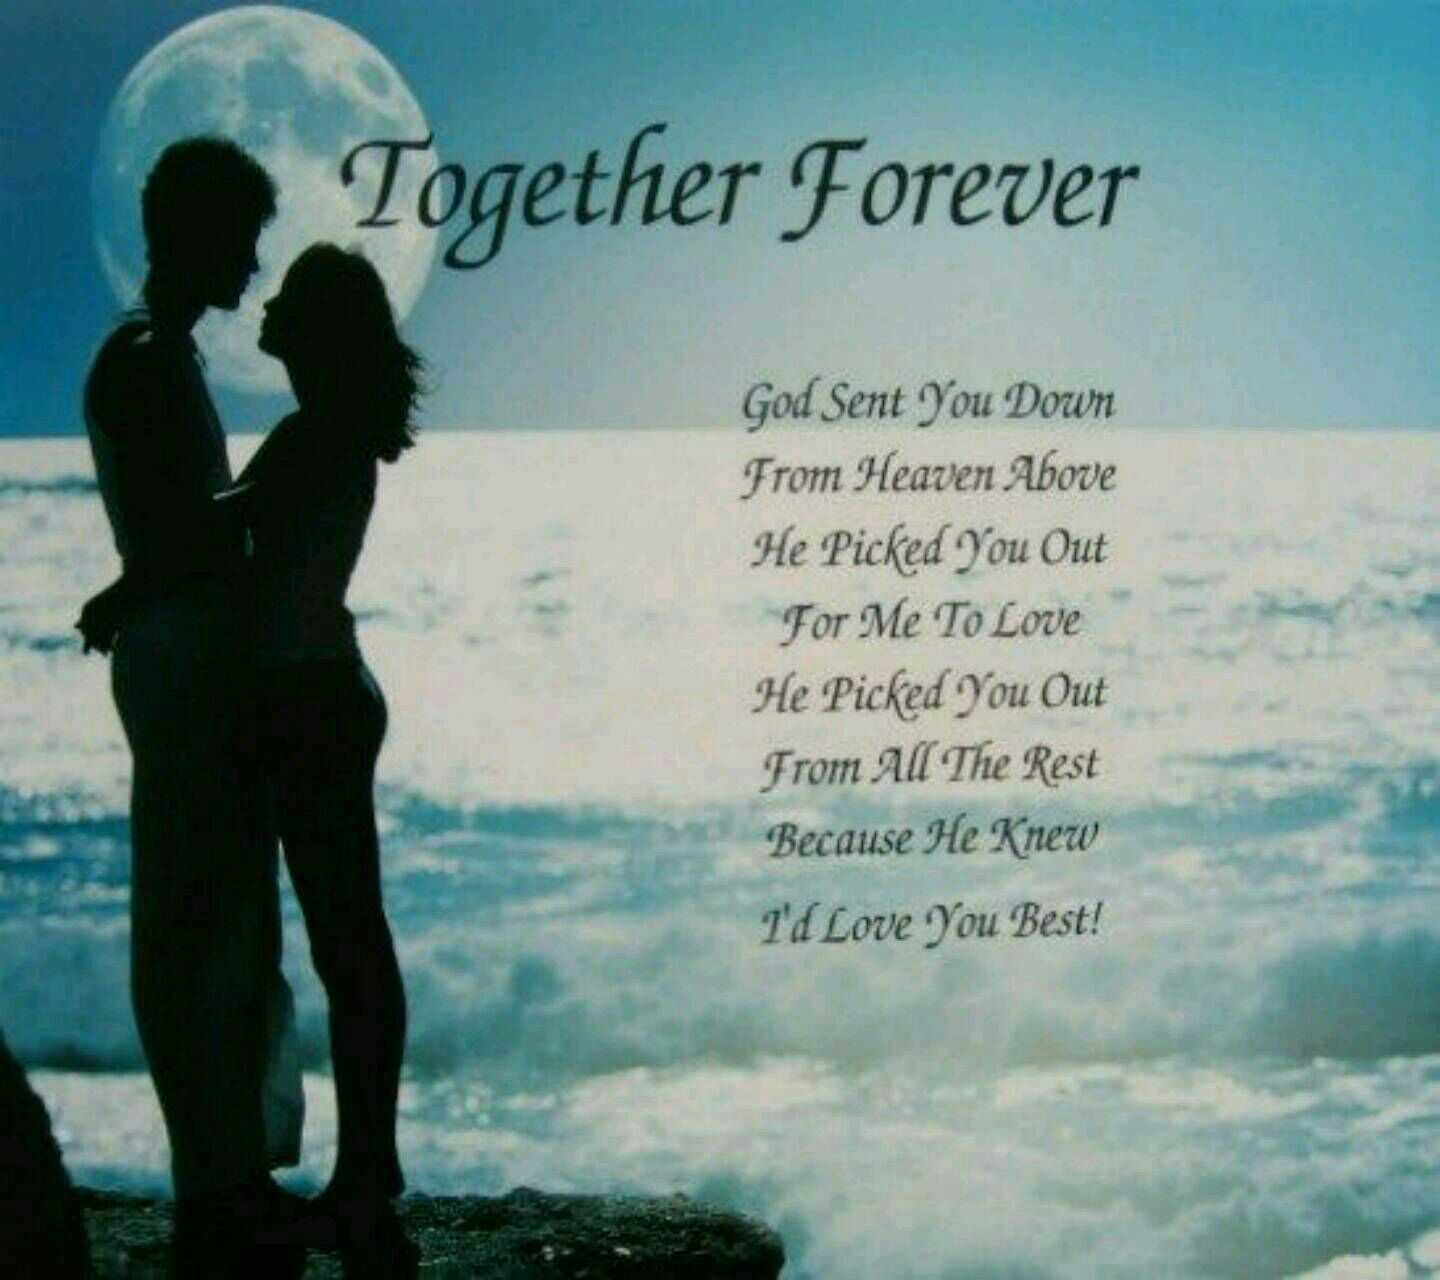 I Love You Quotes - Together Forever - Wattpad